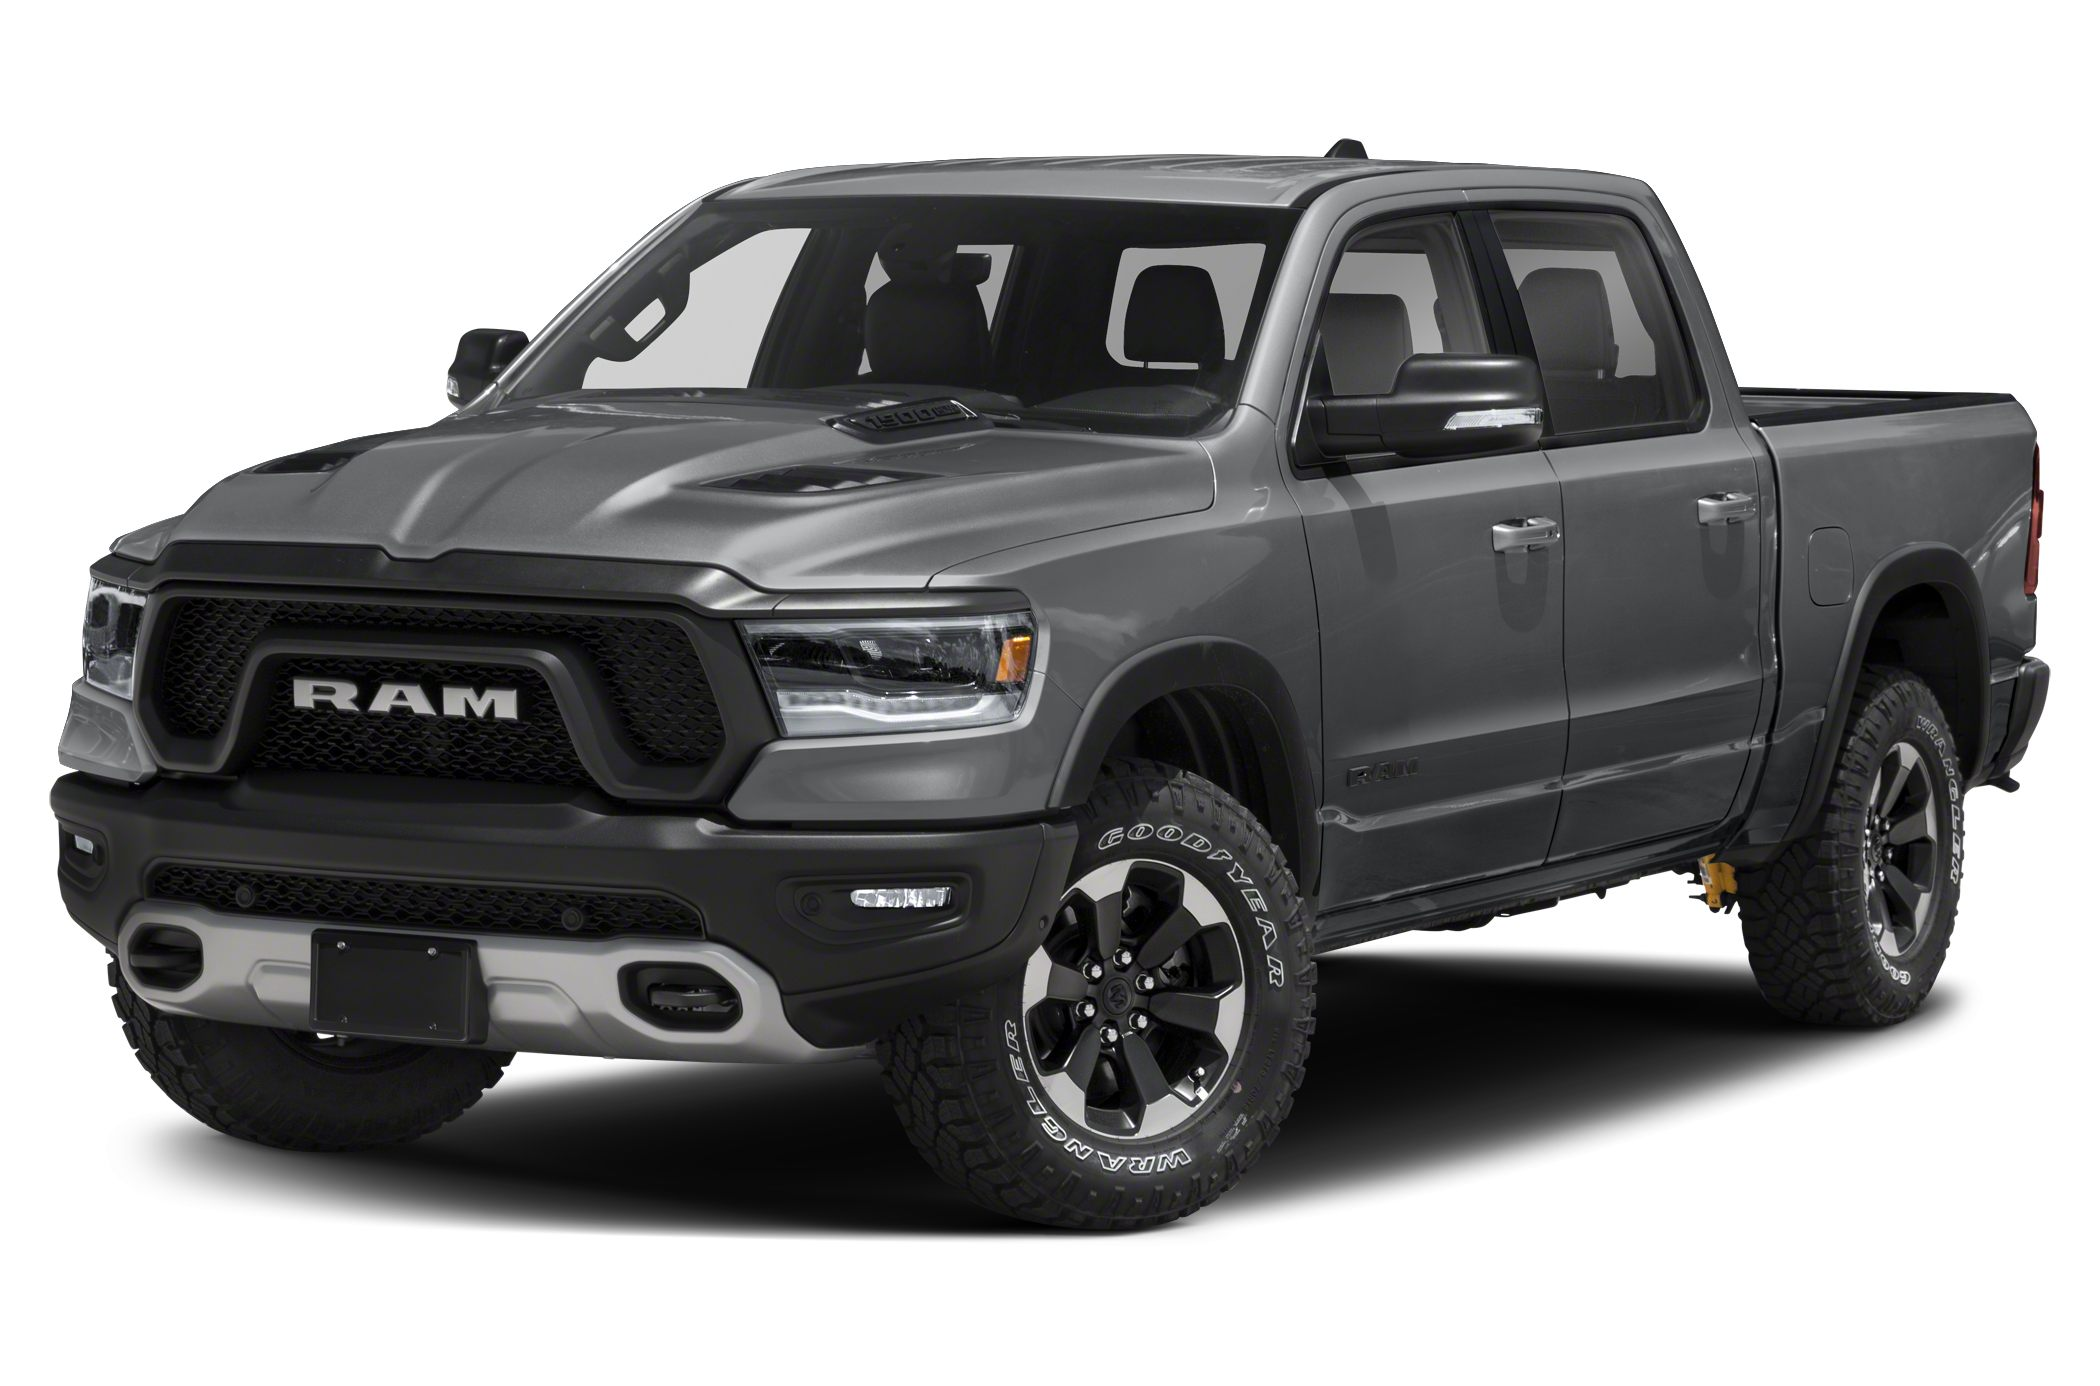 2020 Ram 1500 Rebel 4x4 Crew Cab 144 5 In Wb Pictures